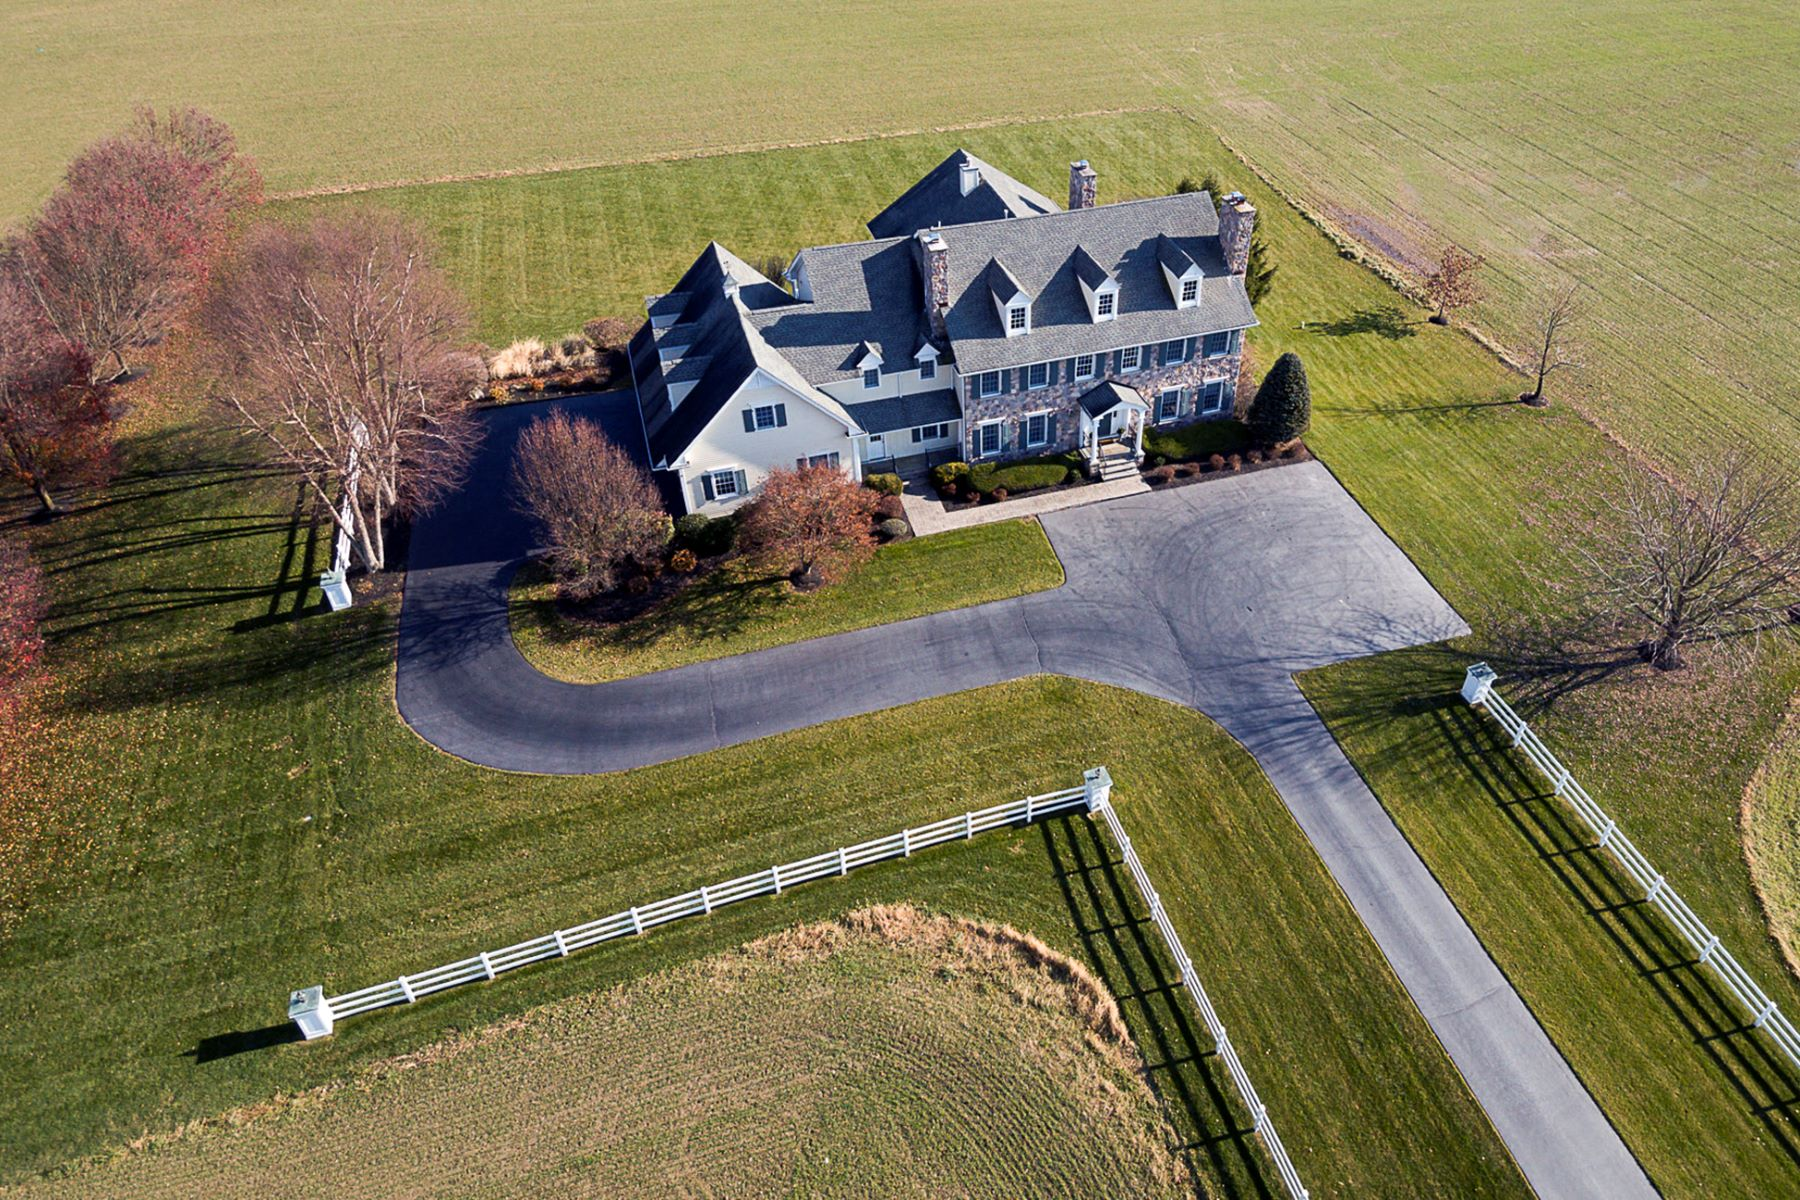 Land for Sale at 6+ Acres - Enchanting Custom Home 81 Petty Road Cranbury, New Jersey 08512 United StatesIn/Around: Cranbury Township